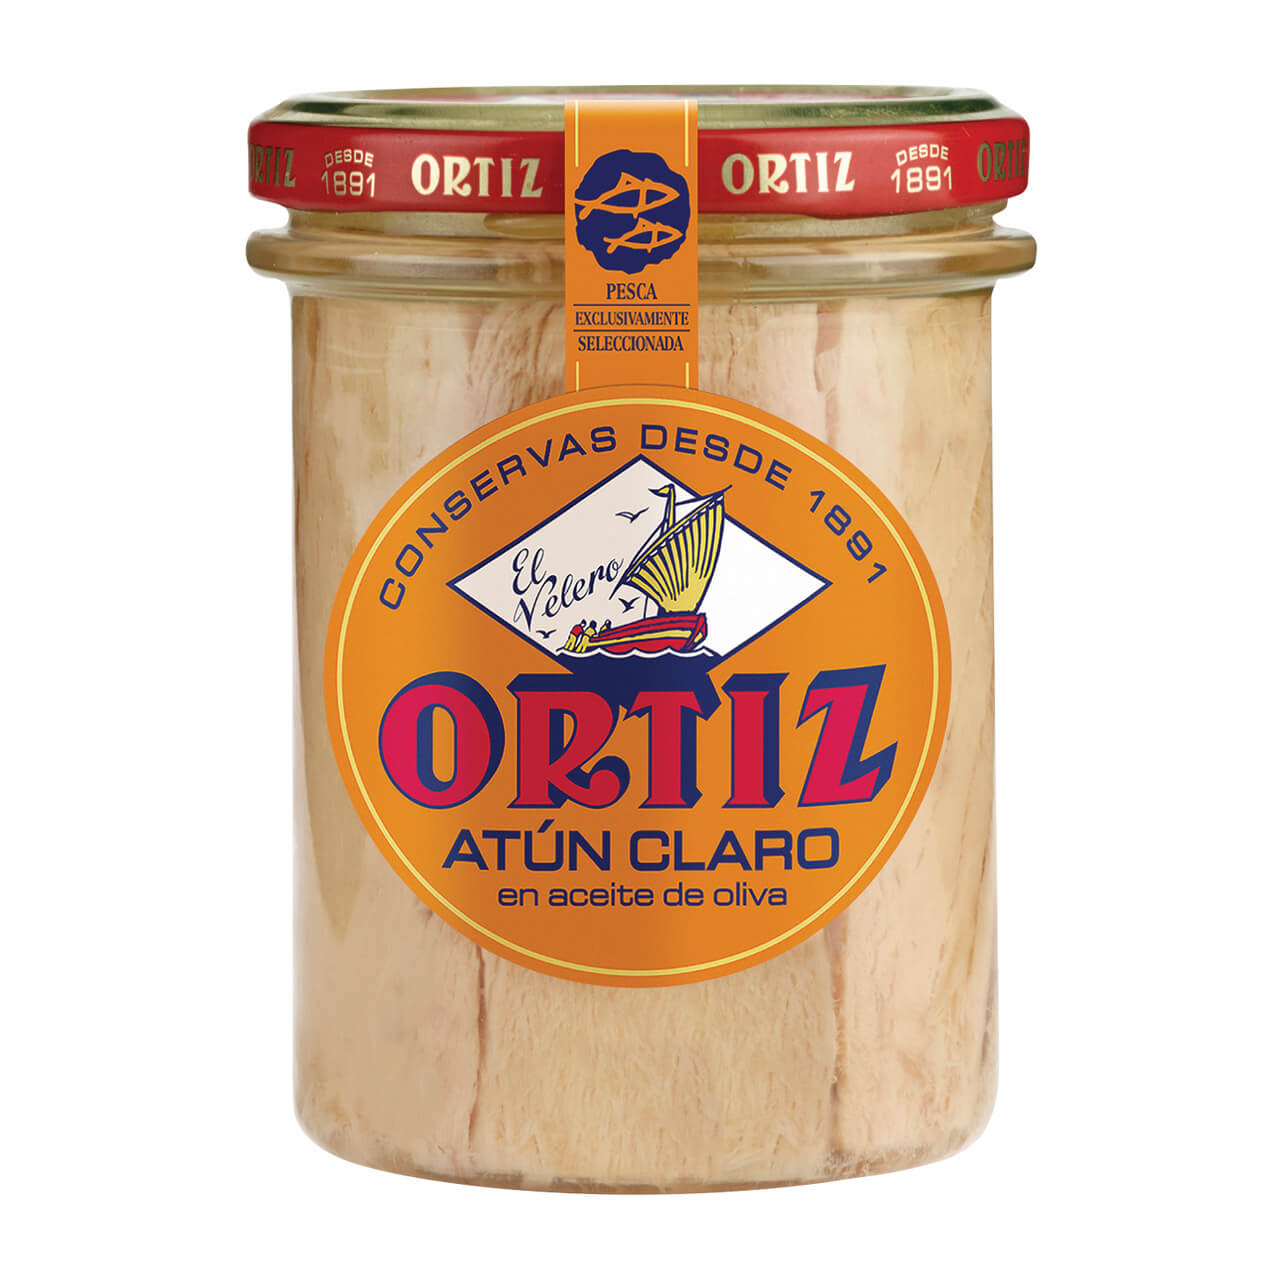 Ortiz Yellowfin Tuna in olive oil 220g jar